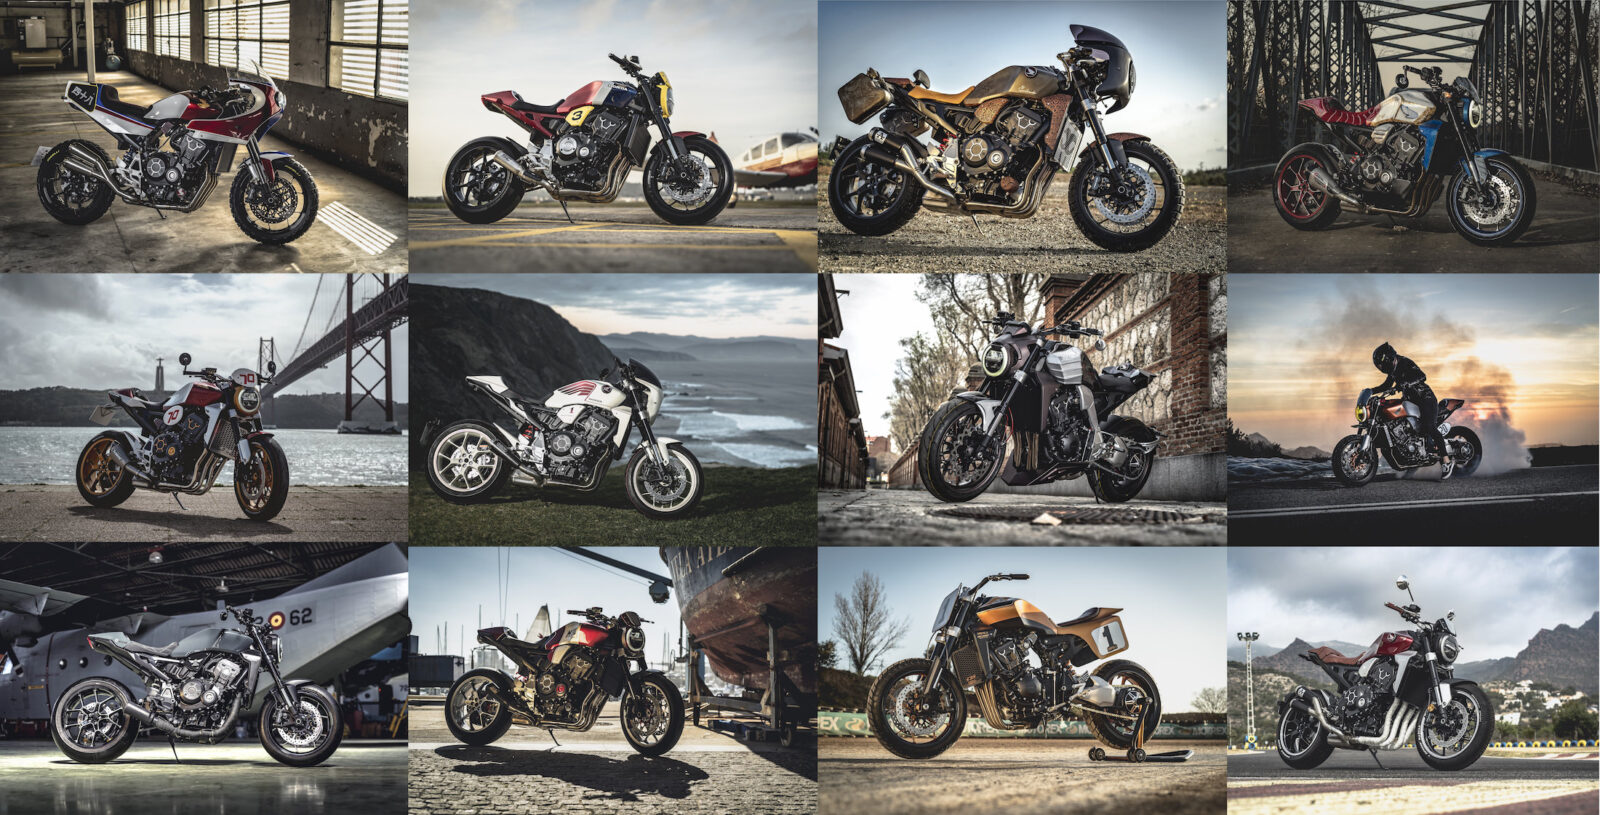 The Honda CB1000R - 13 New Customs From Spain, Portugal, and the Balearic Islands